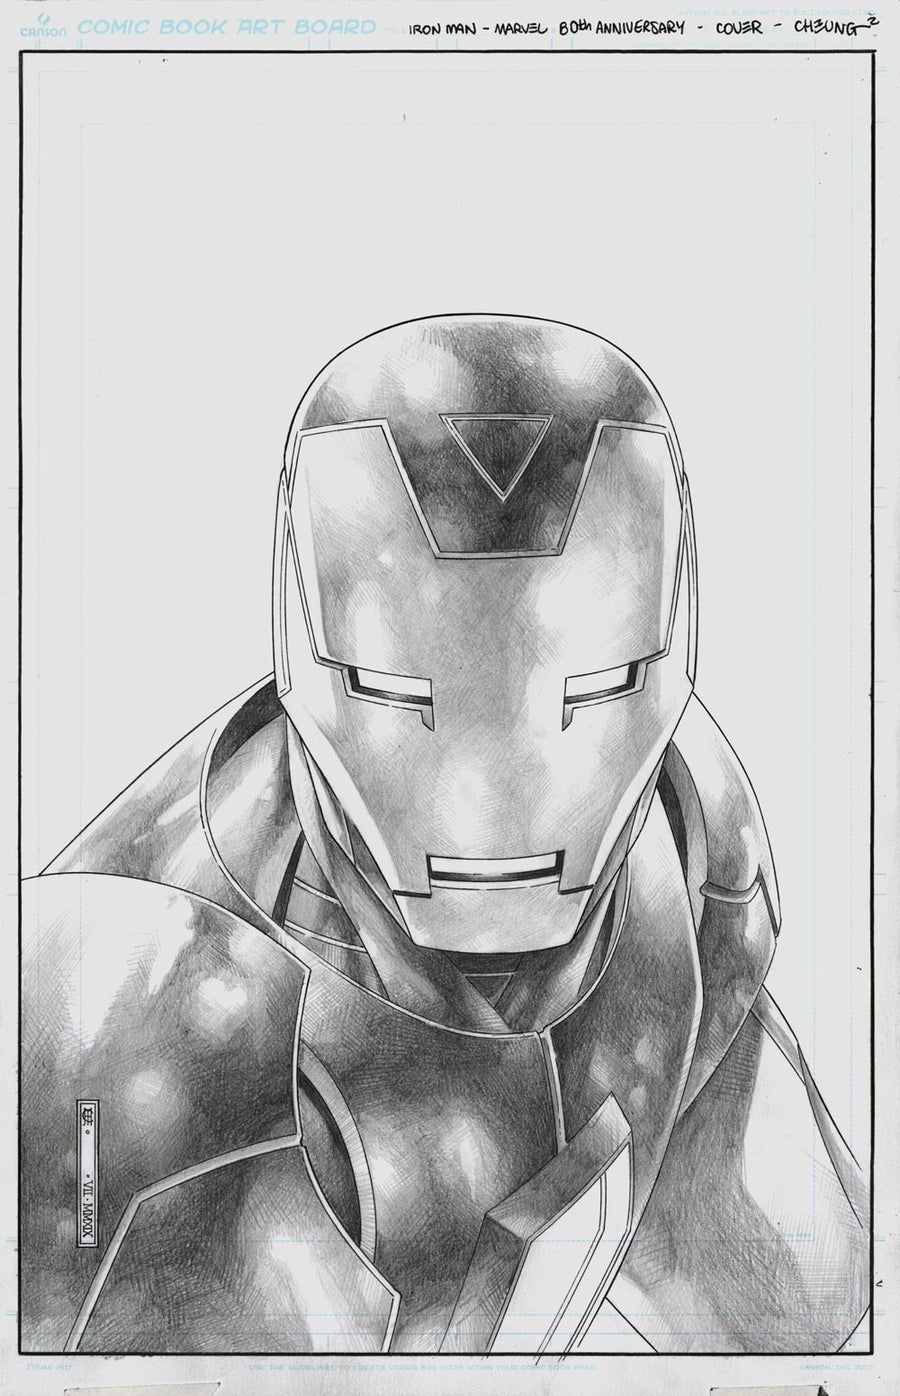 Image of TONY STARK: IRON MAN #15 (80th ANNIVERSARY FRAME) Cover - ON HOLD